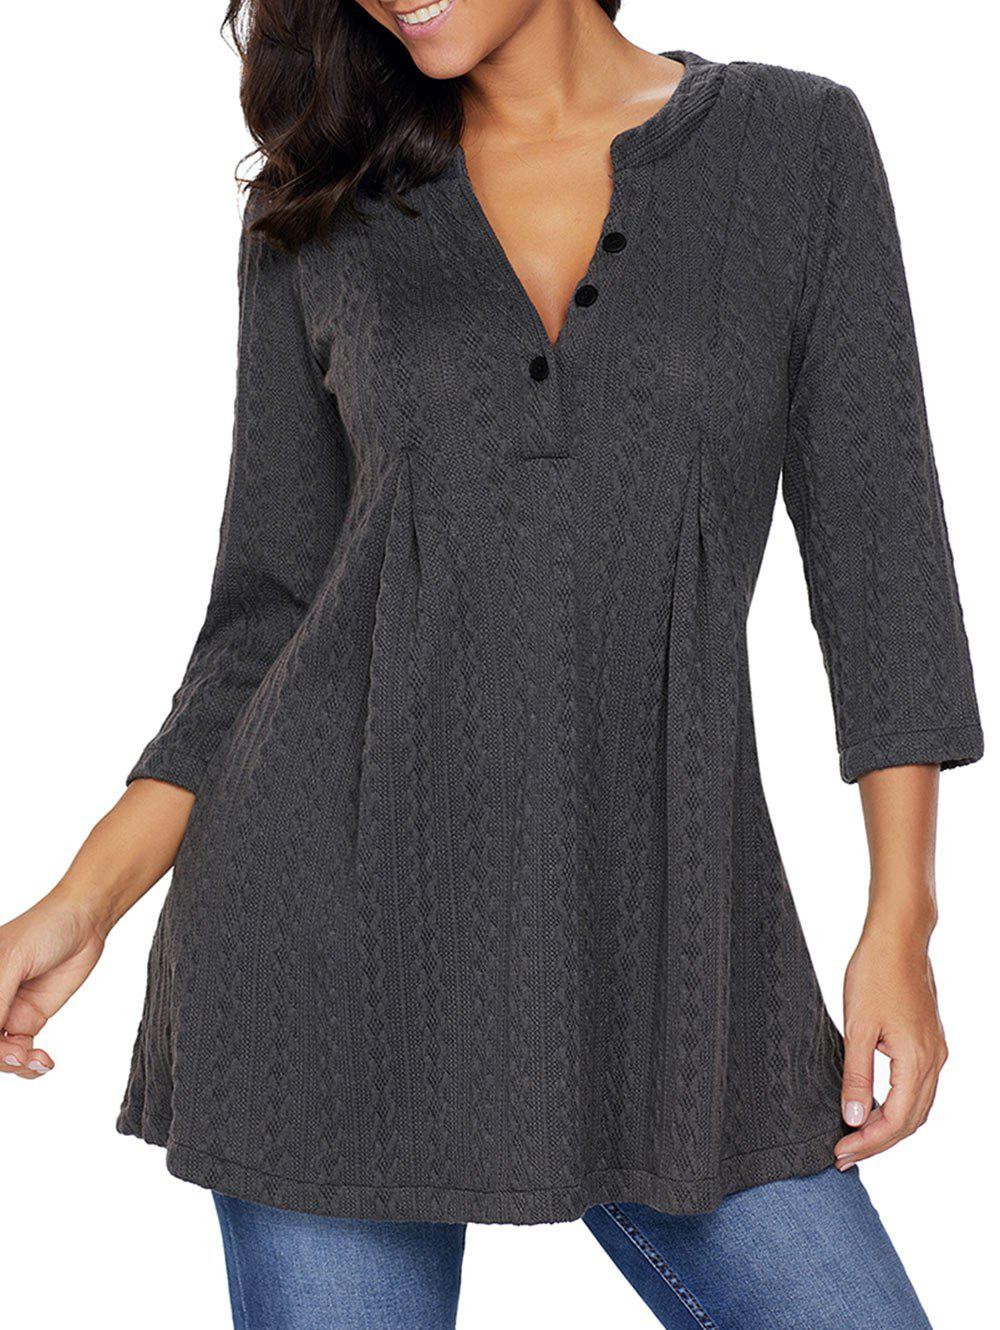 Cable Knitted V Neck Tunic SweaterWOMEN<br><br>Size: L; Color: DEEP GRAY; Type: Pullovers; Material: Polyester,Spandex; Sleeve Length: Three Quarter; Collar: V-Neck; Style: Fashion; Pattern Type: Solid; Season: Fall,Spring; Weight: 0.6300kg; Package Contents: 1 x Sweater;